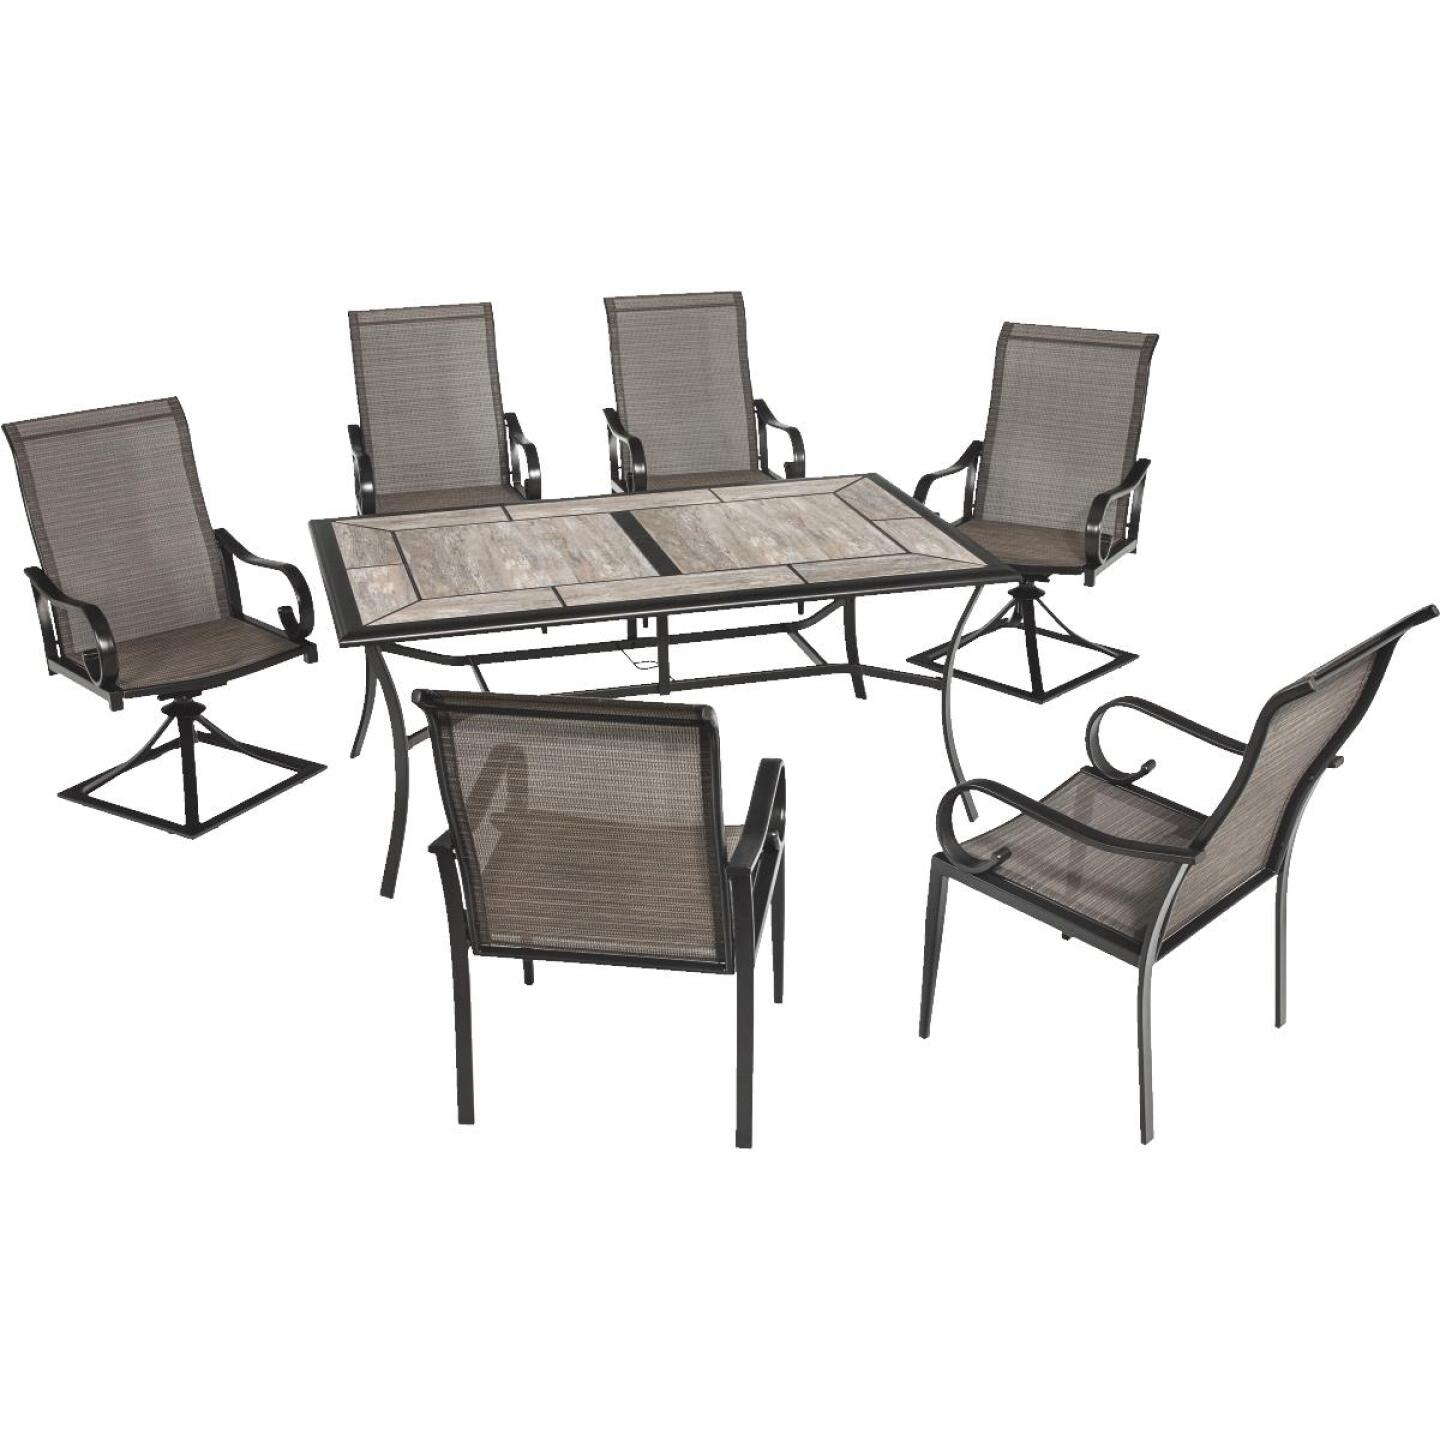 Outdoor Expressions Berkshire 7-Piece Dining Set Image 301